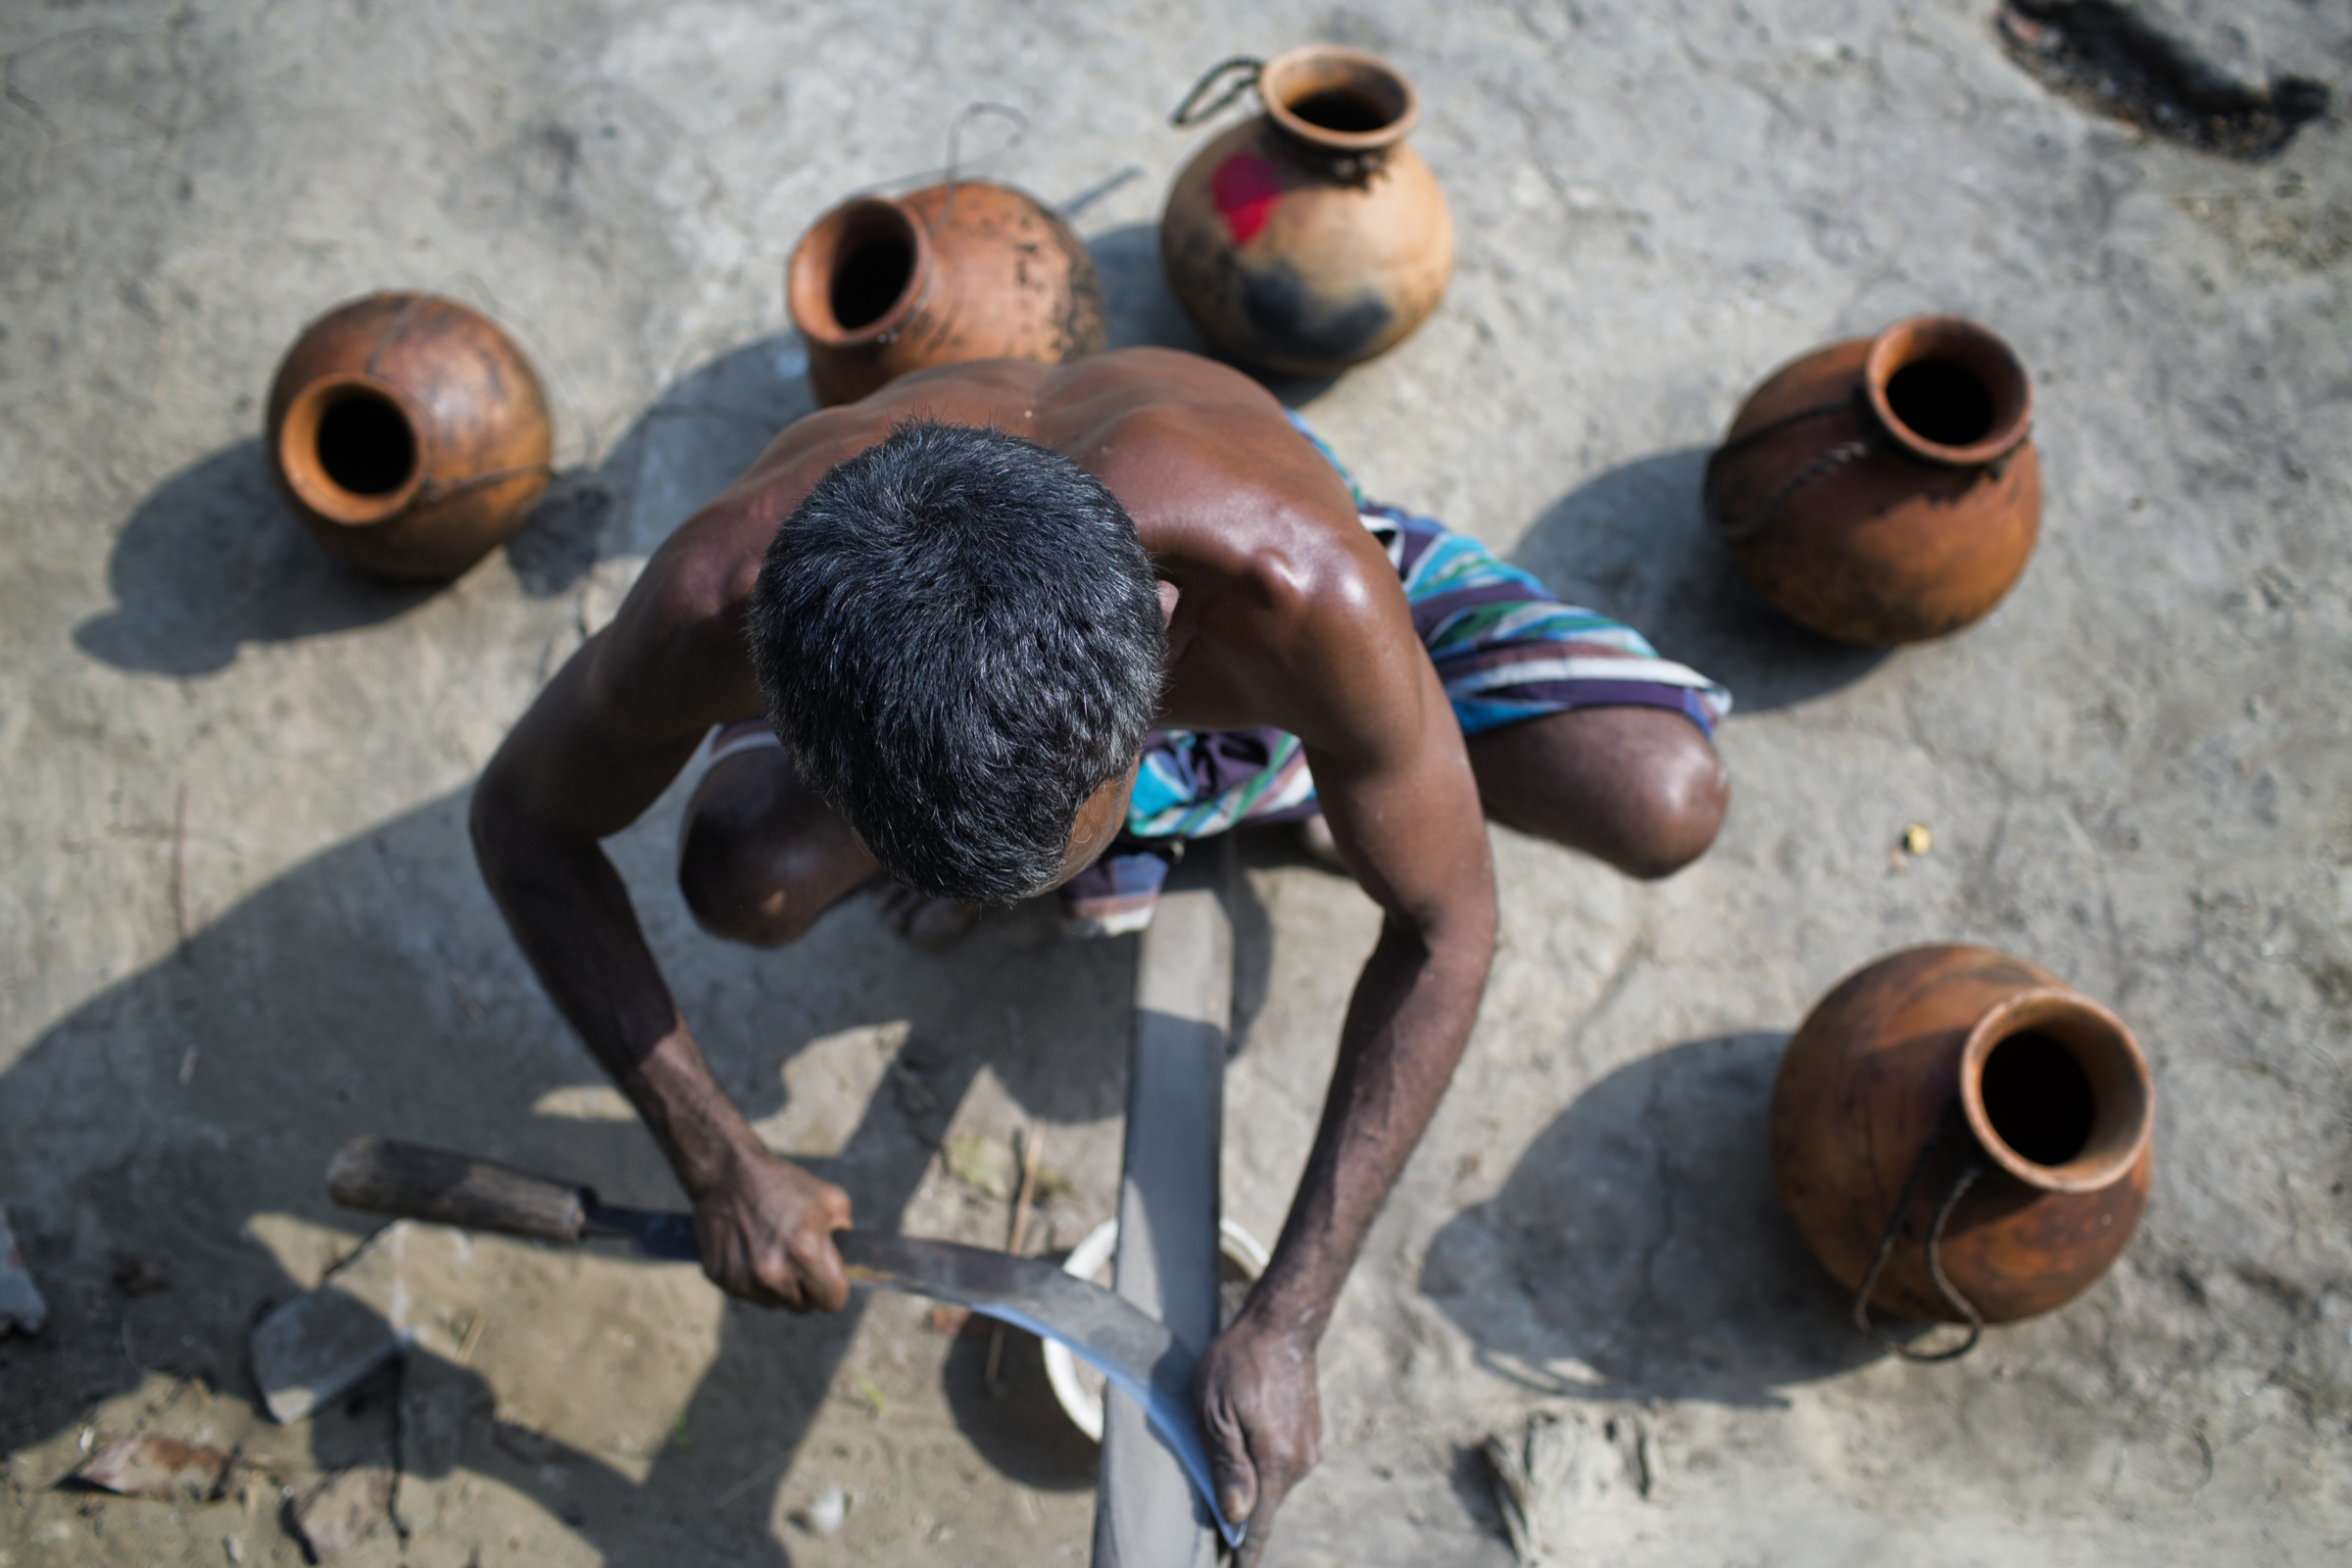 A <em>gachhi</em> sharpens the curved knife he will use to carve away the bark of date palm trees, which will cause the trees to ooze the sap the <em>gachhi</em> is interested in. Photograph by A.M. Ahad